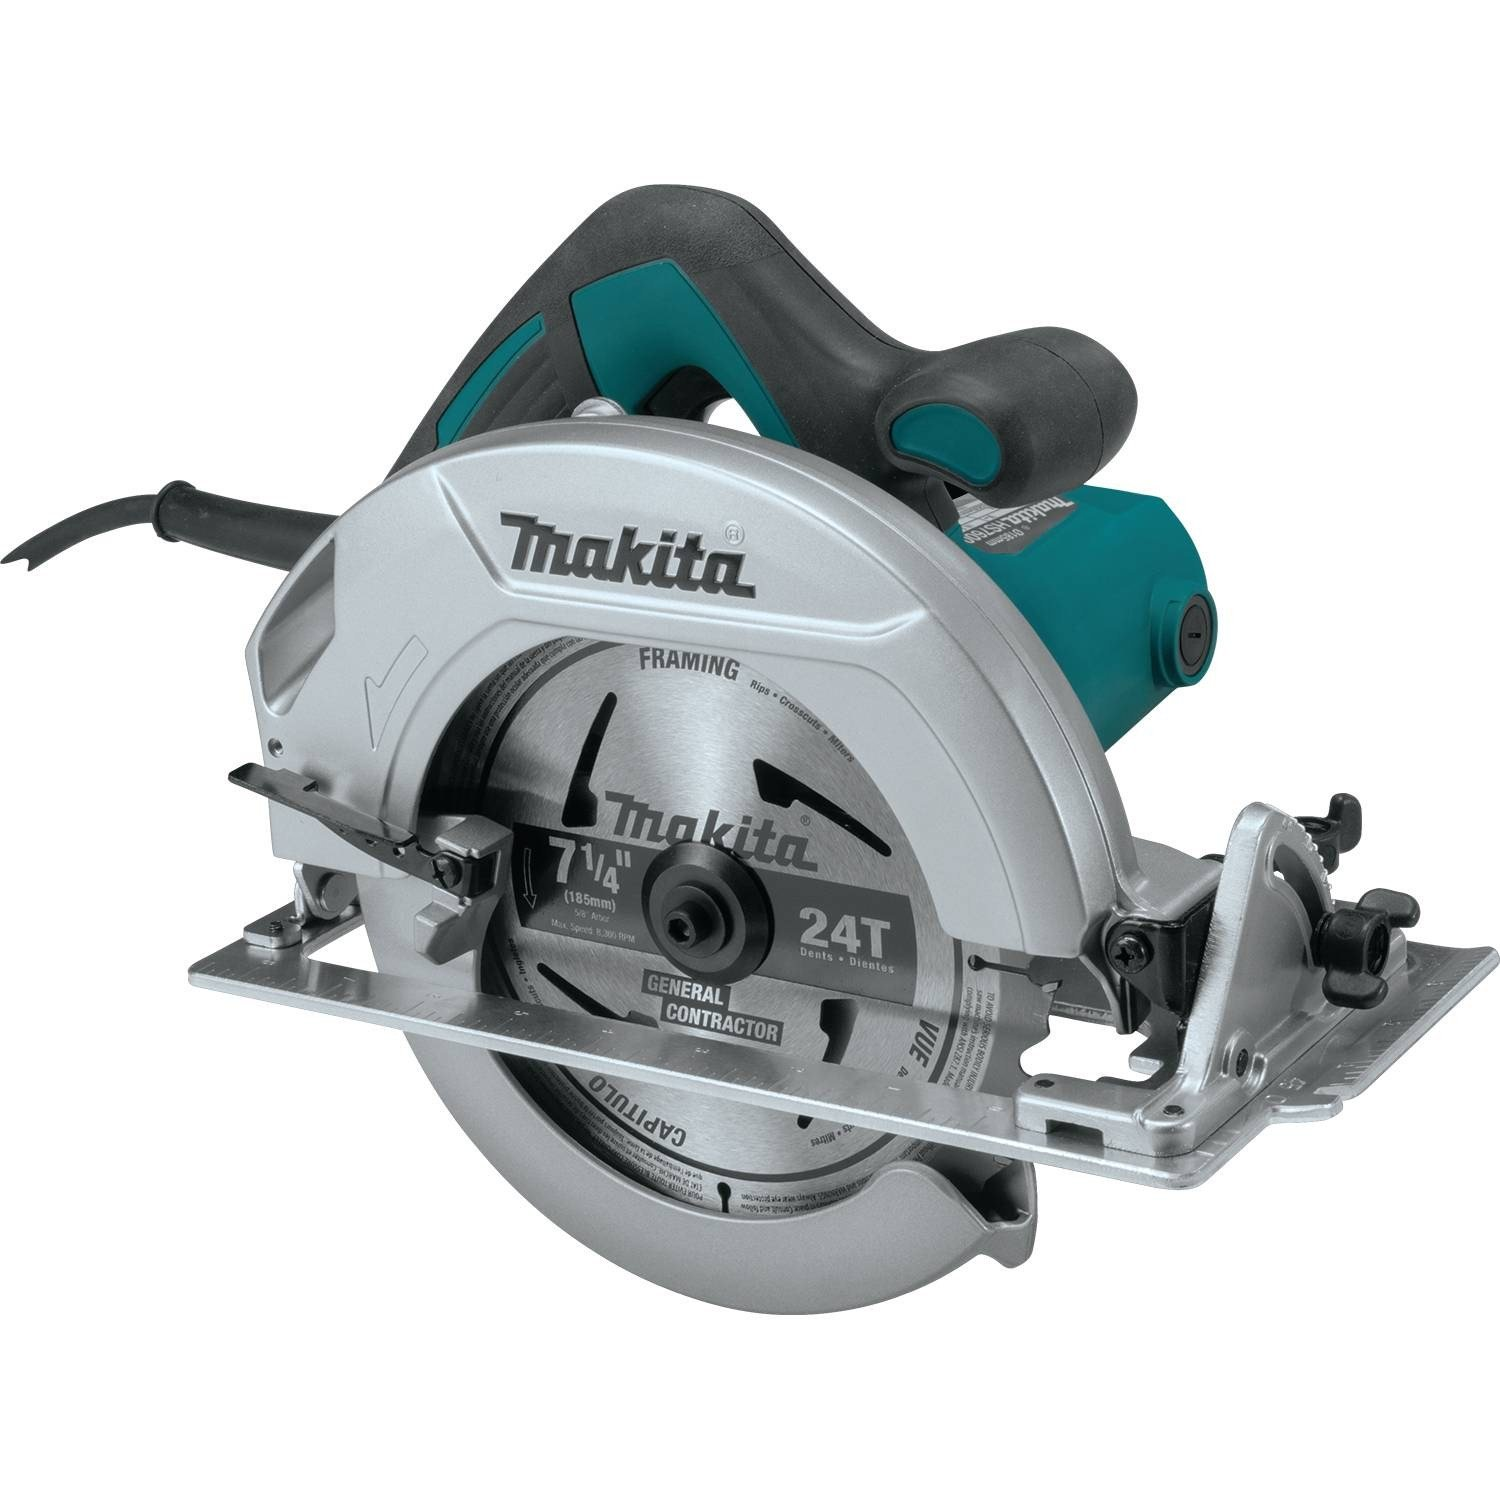 Makita HS7600 Circular Saw, 7-1 4